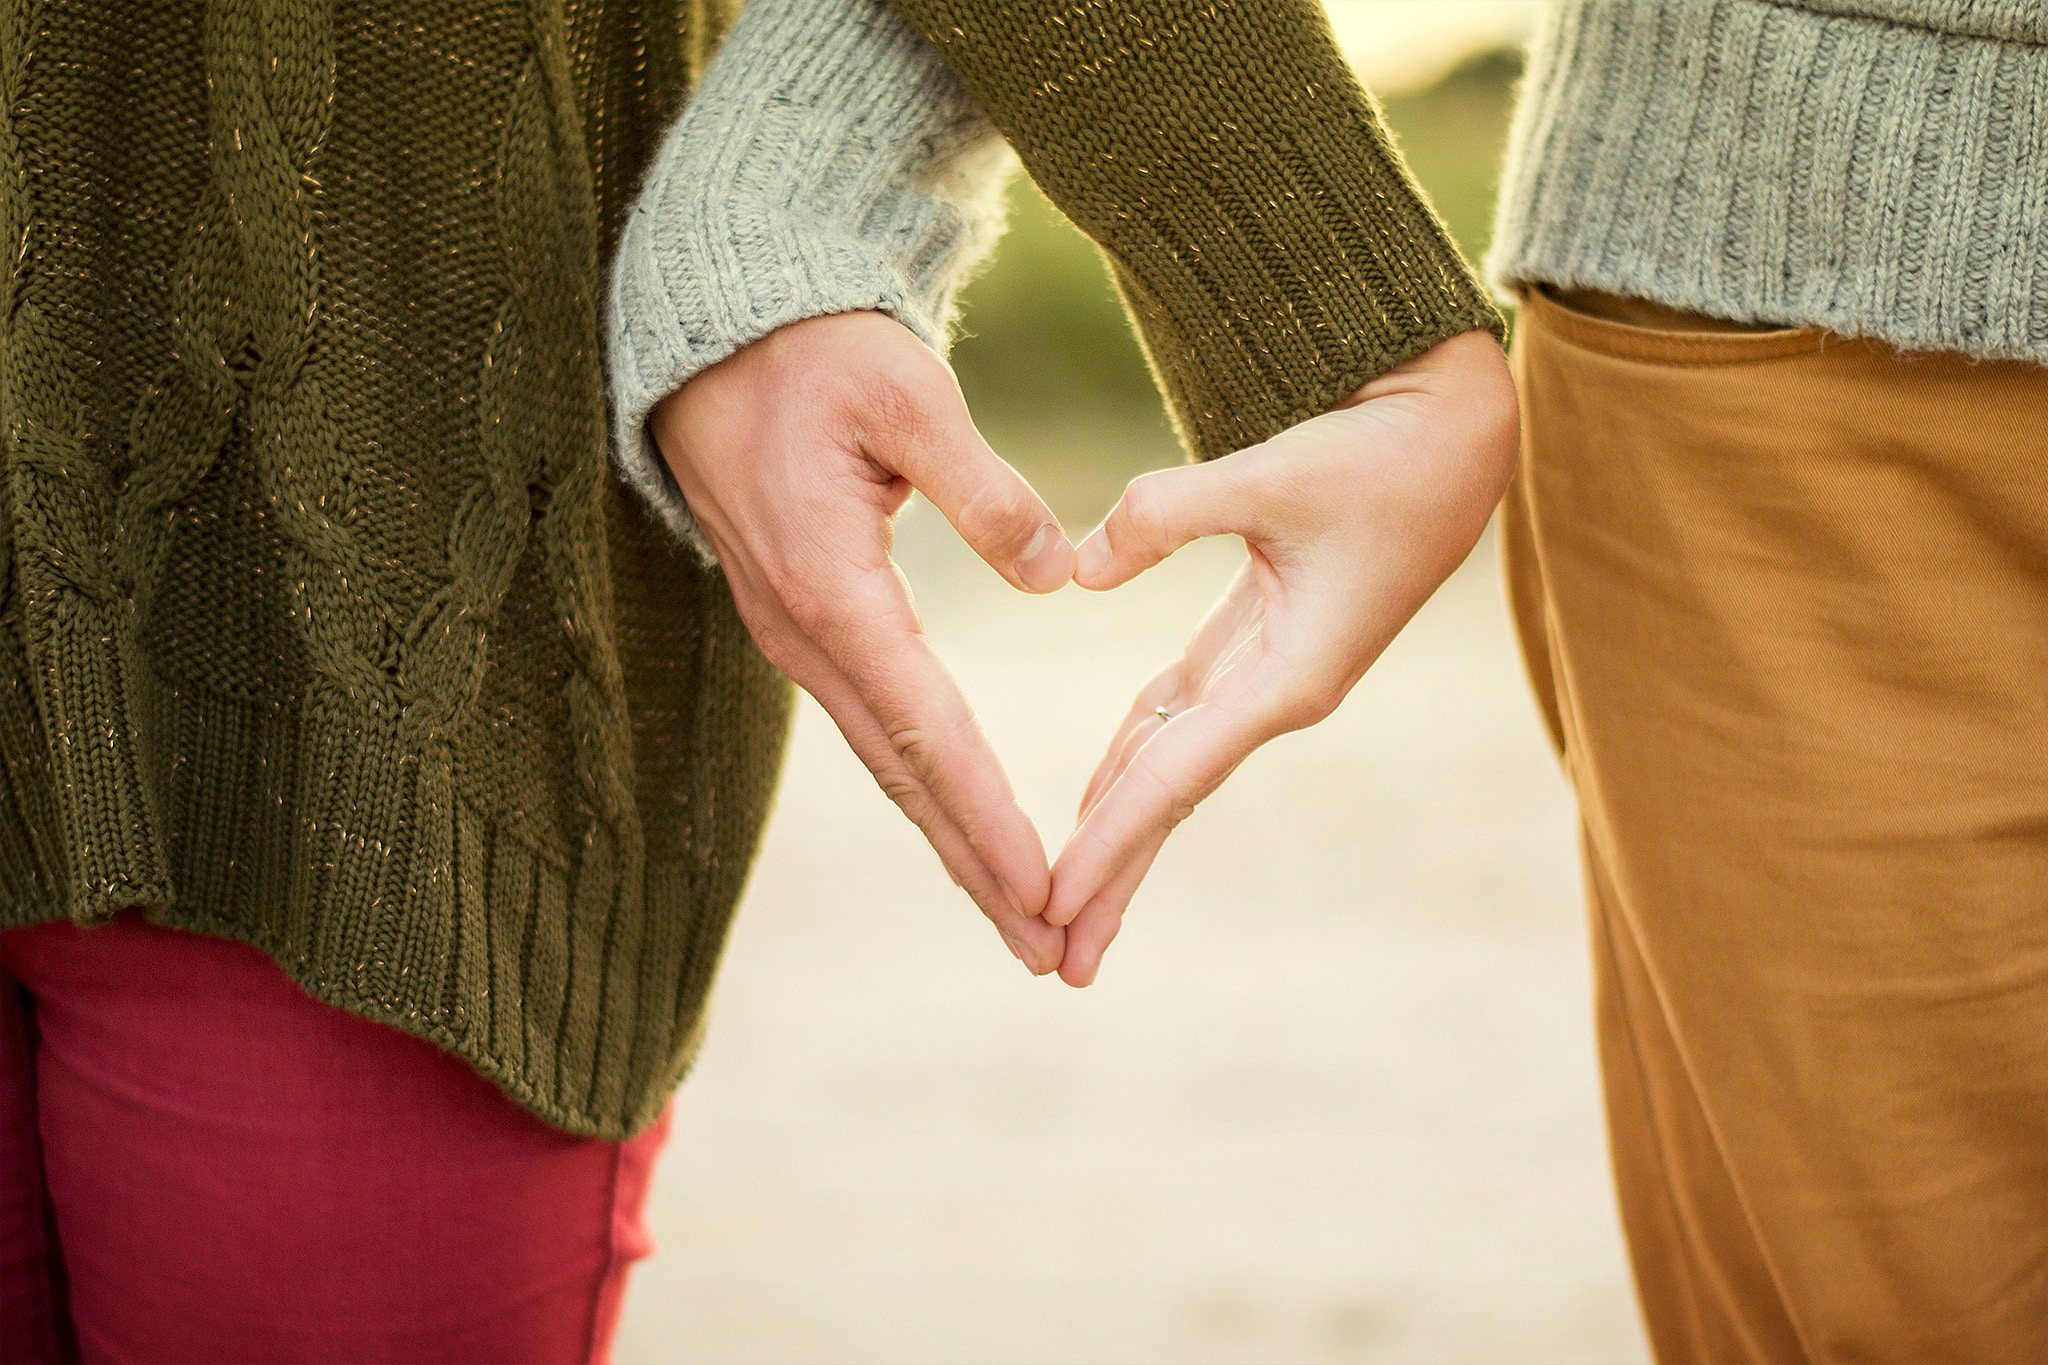 Two people forming a heart shape with their hands